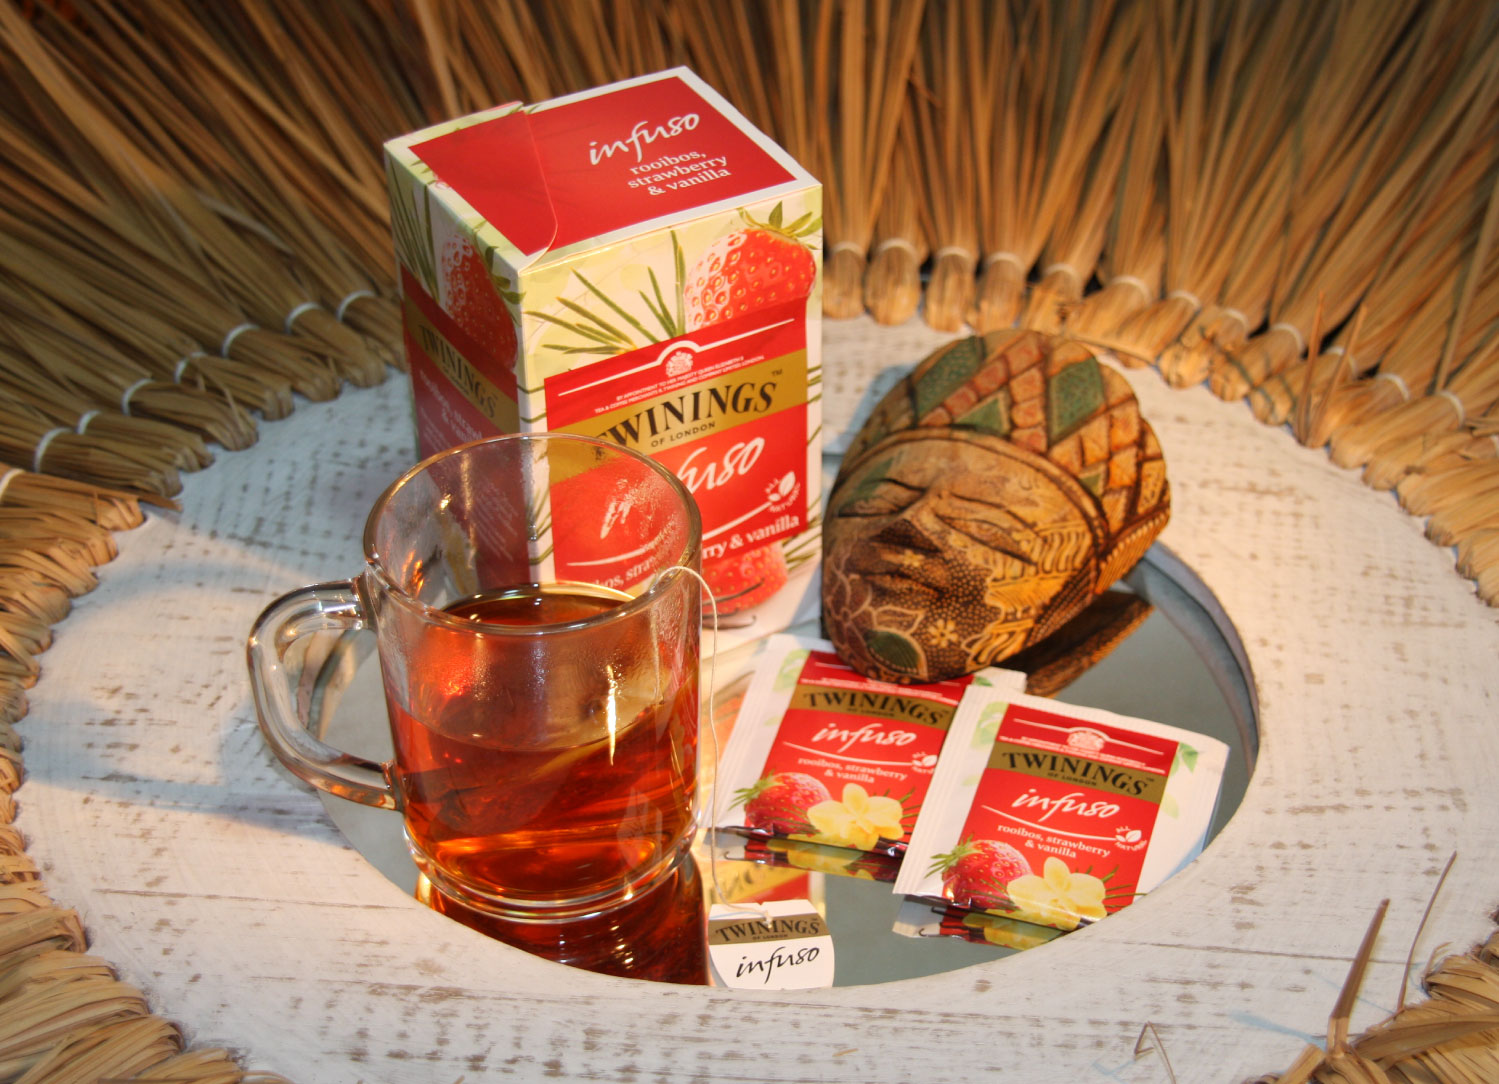 twinings-infuso-herbal-tea-rooibos-strawberry-vanilla